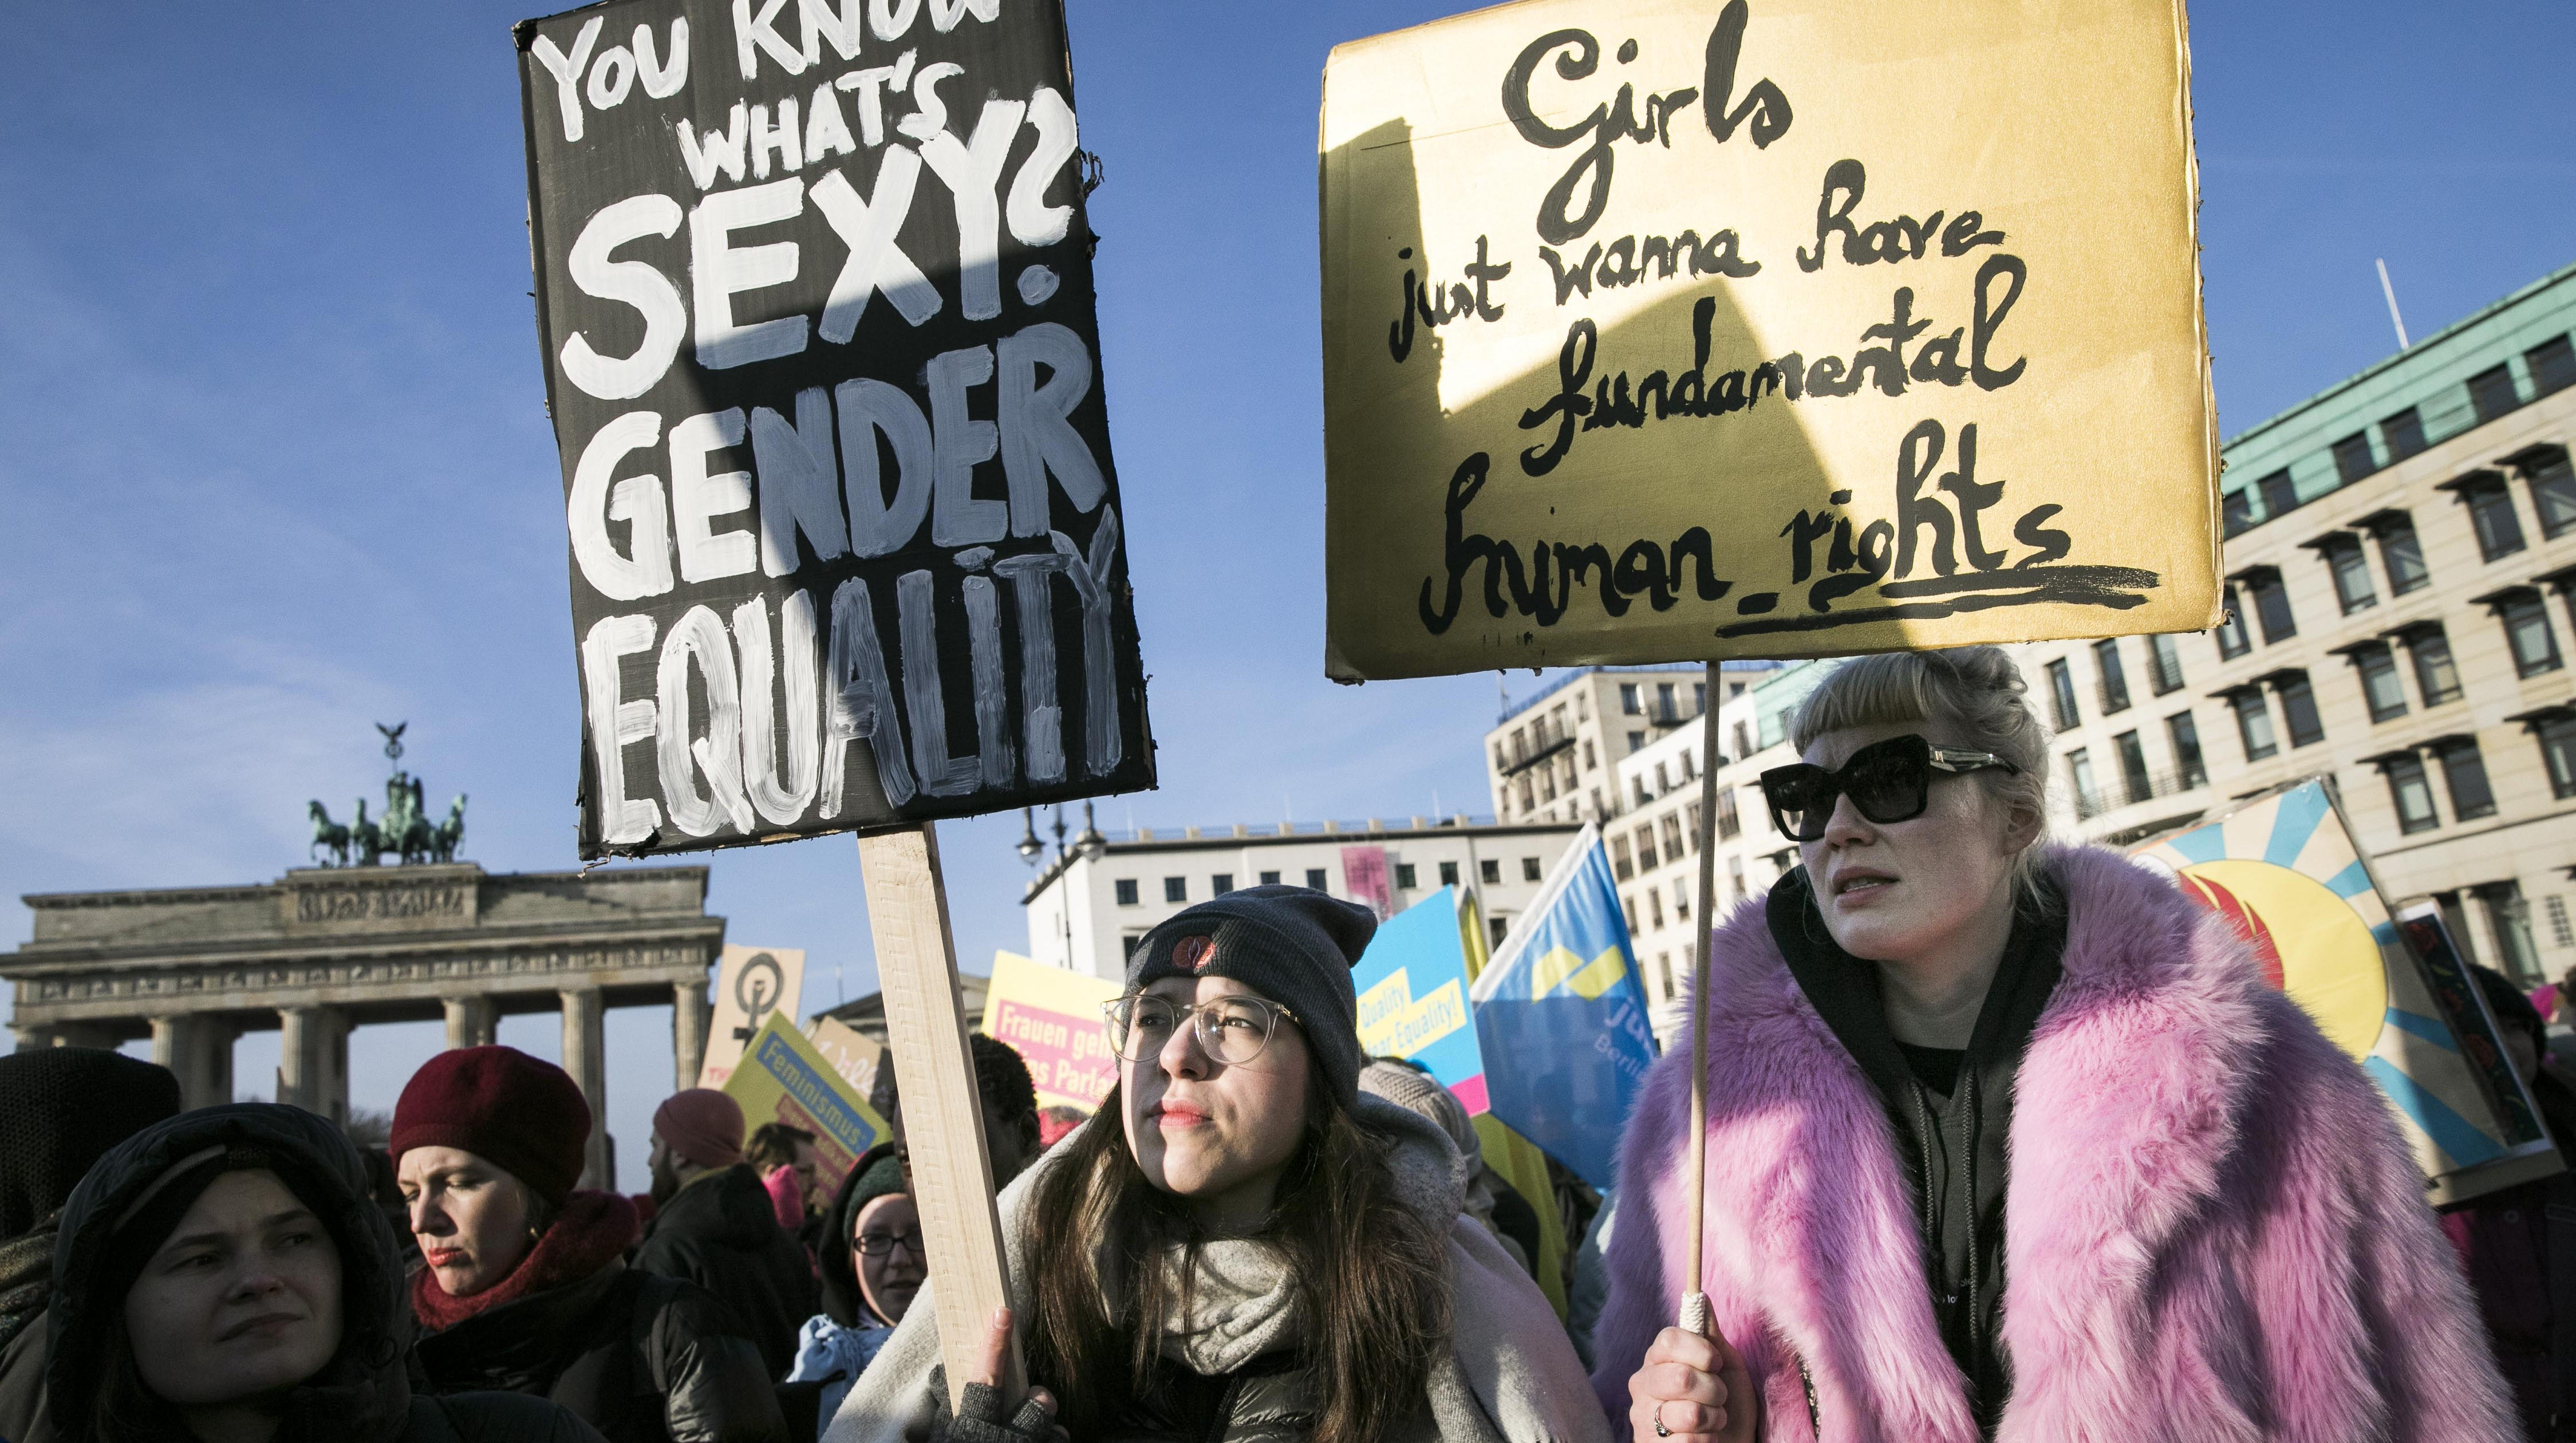 People attend the Women's March 2019 protest for more women's rights on January 19, 2019 in Berlin, Germany. Organized by Democrats Abroad, the event coincides with Women's Marches taking place today across the USA.